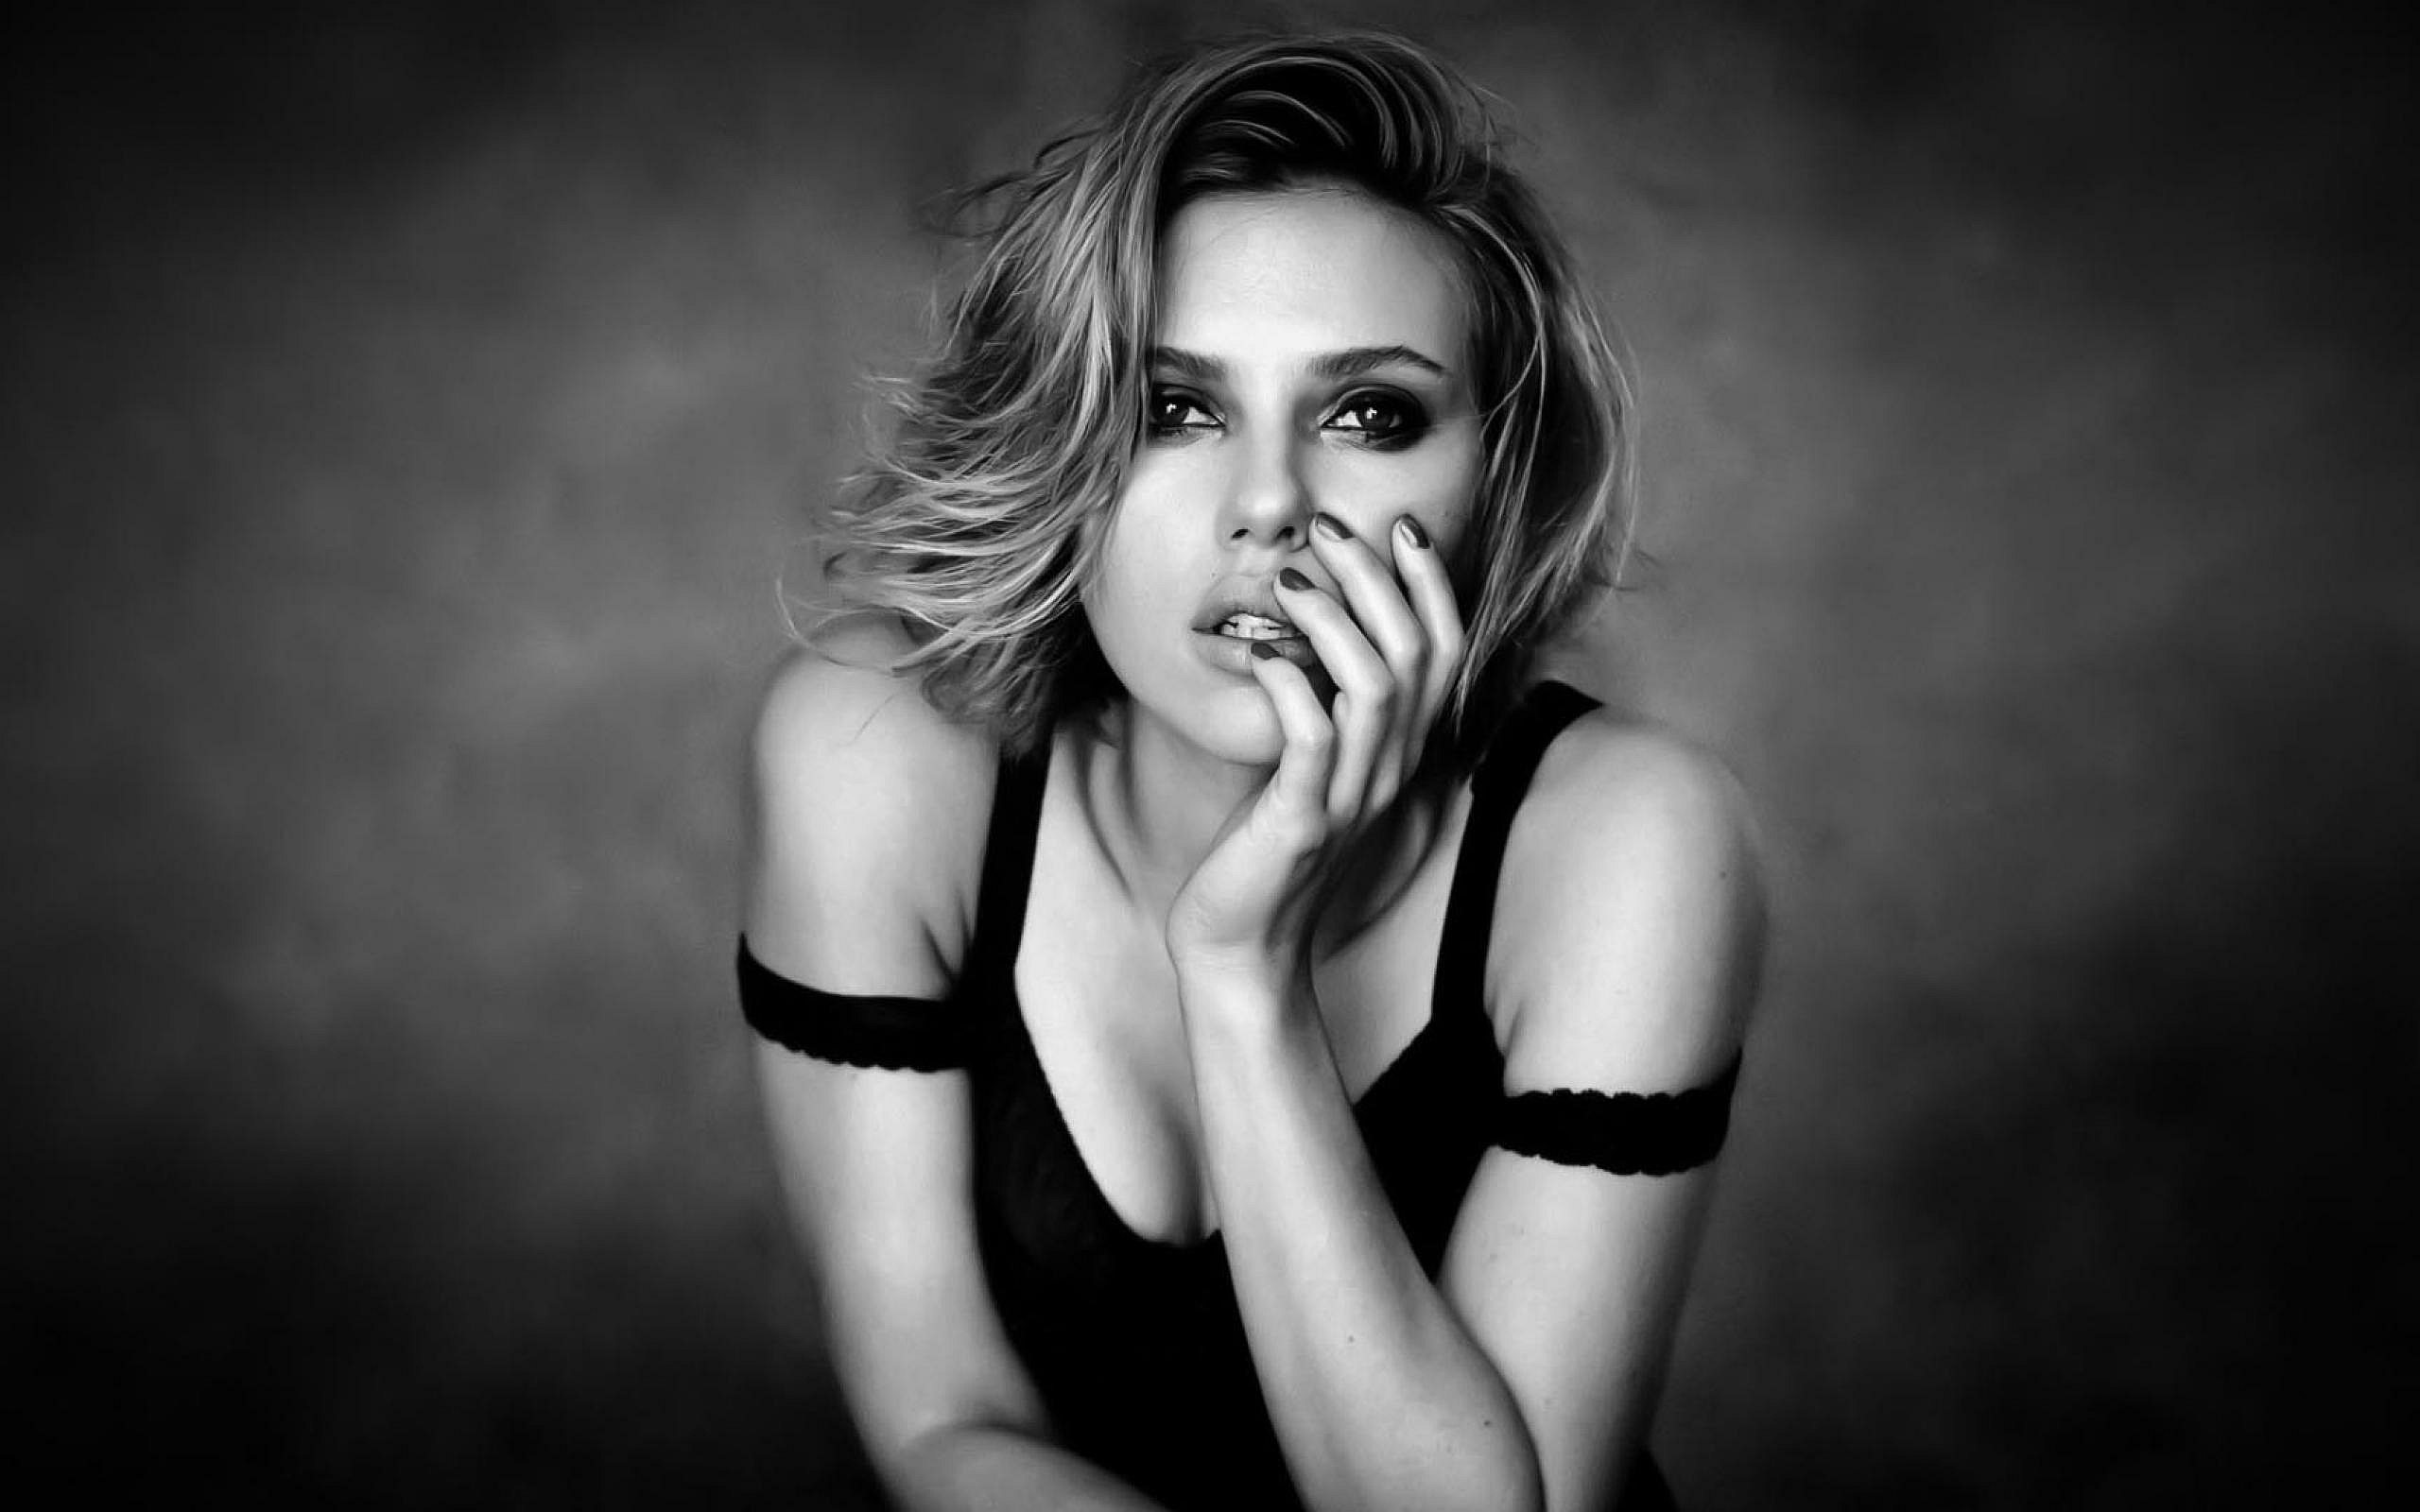 Scarlett Johansson black and white - Scarlett Johansson Net Worth, Awards, Movies and Private Life, Pictures and Wallpapers